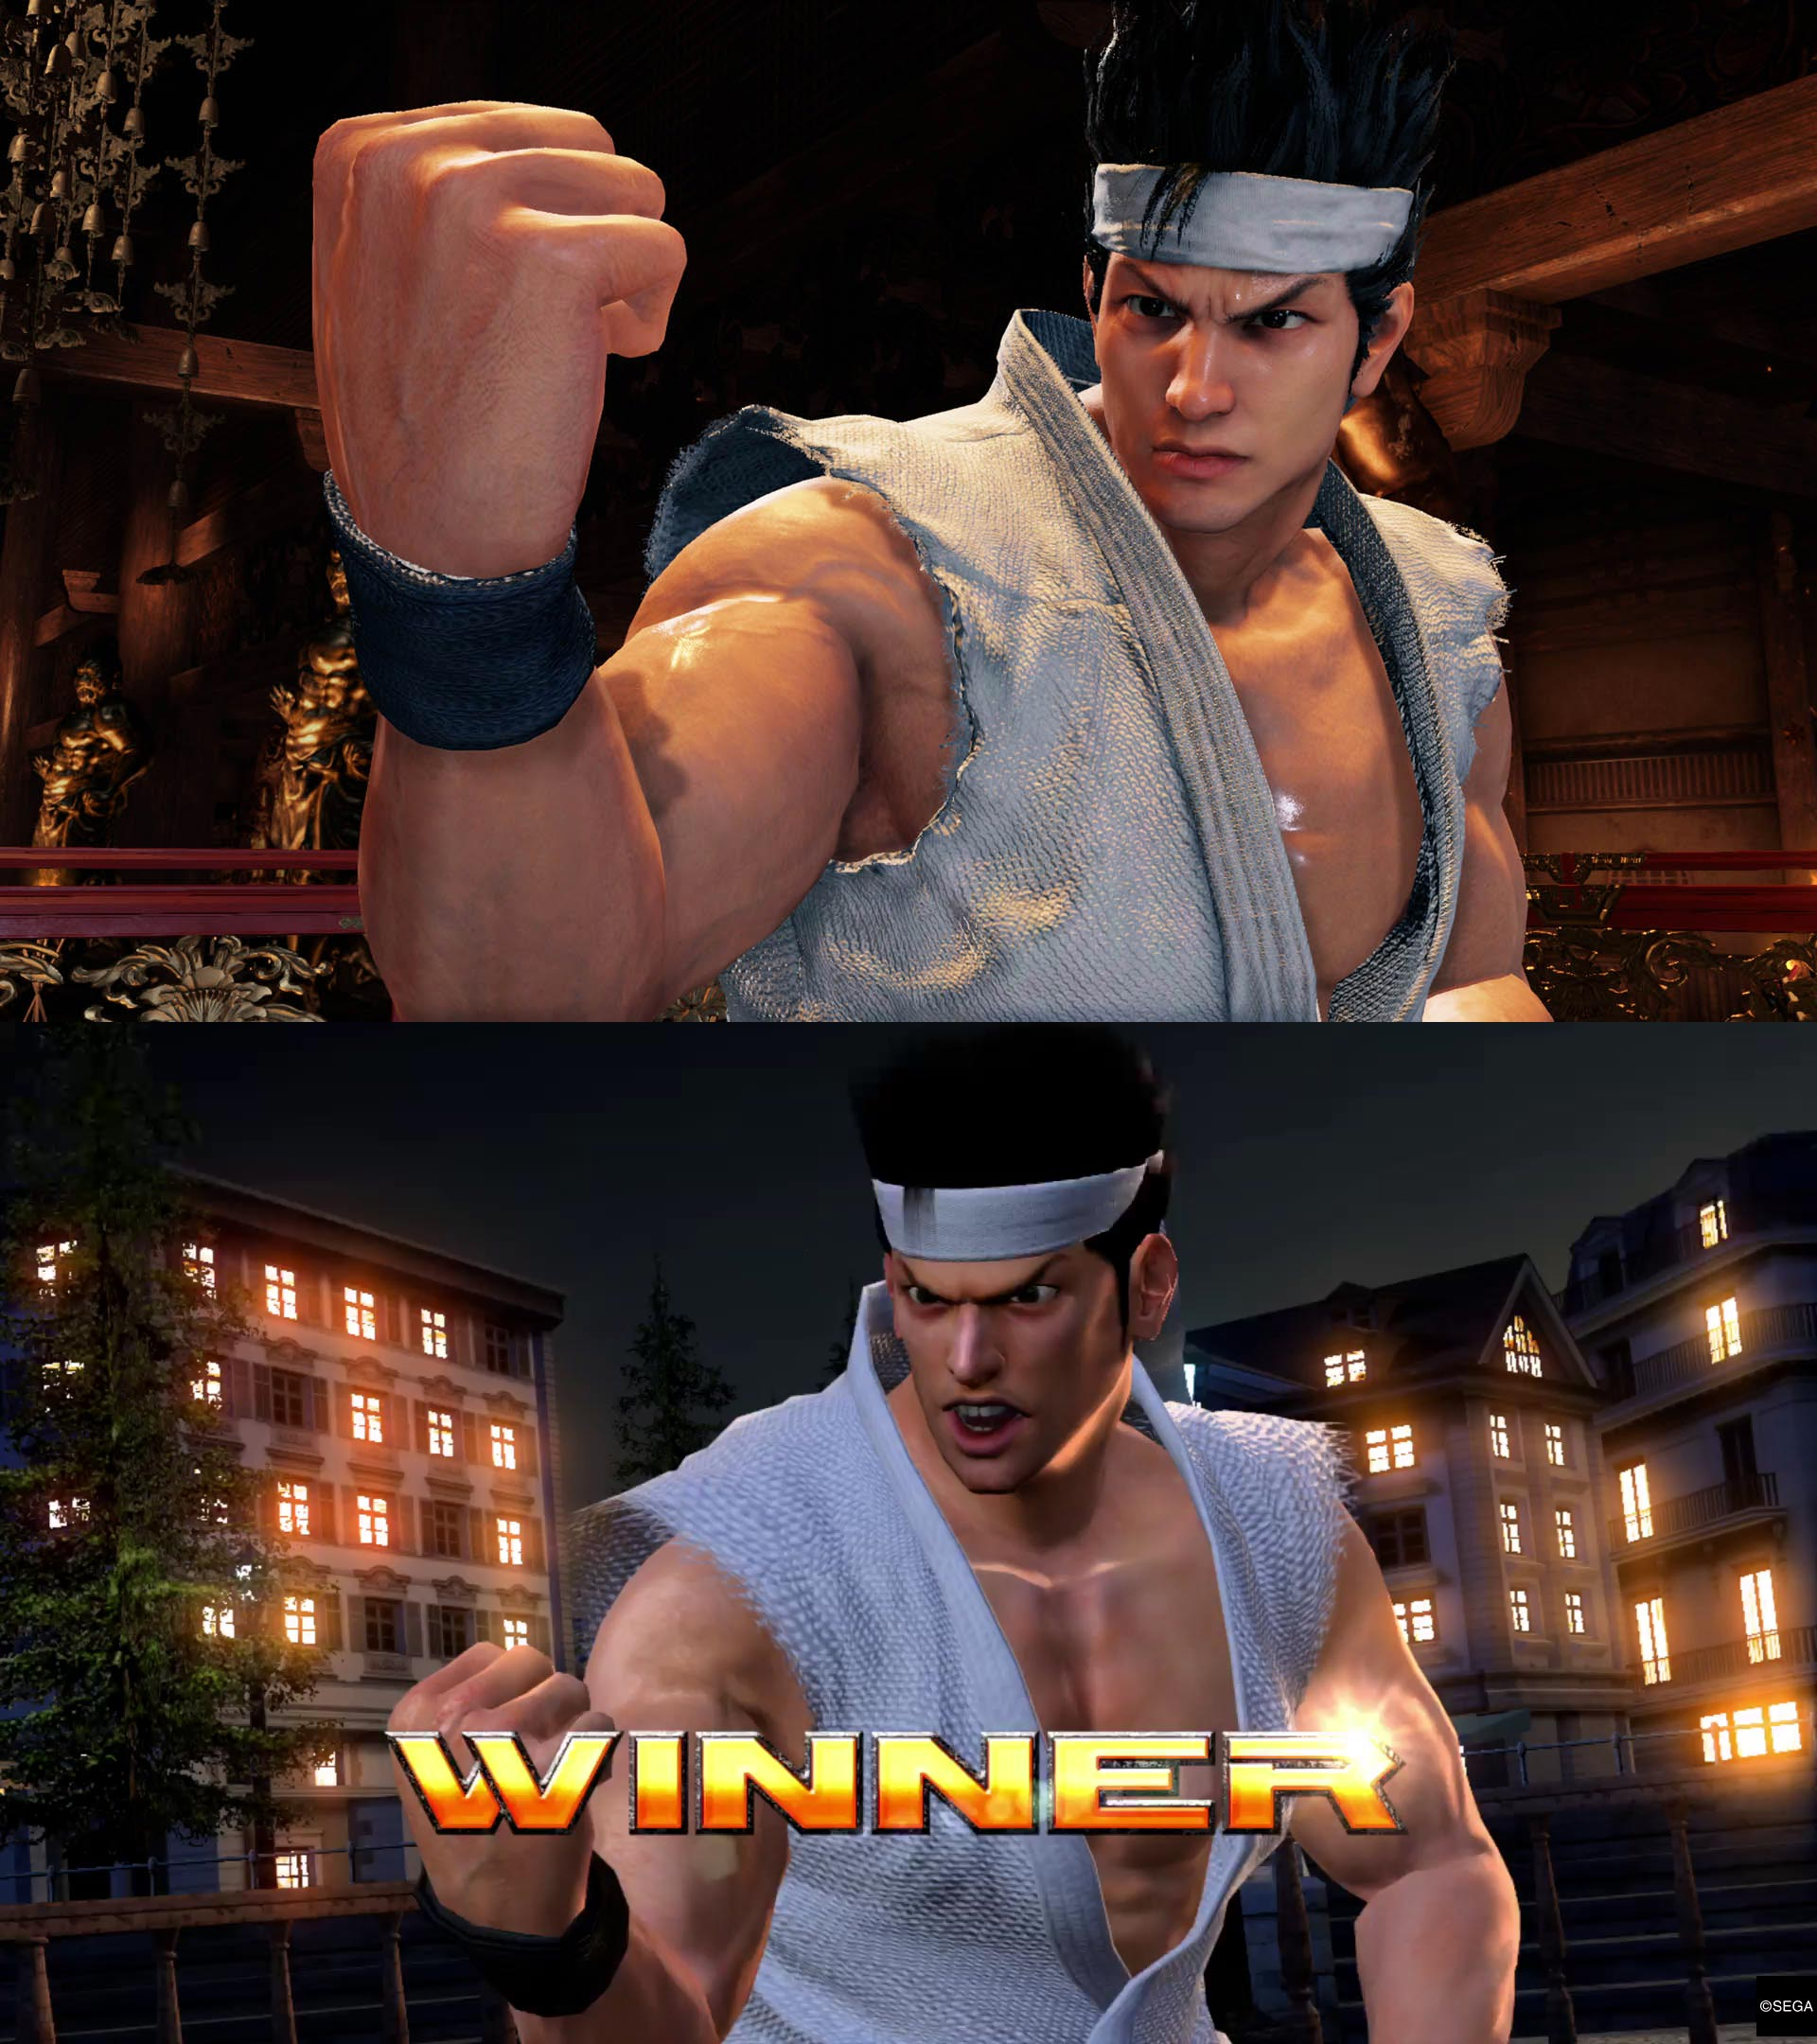 Virtua Fighter 5 graphics comparison 1 out of 5 image gallery